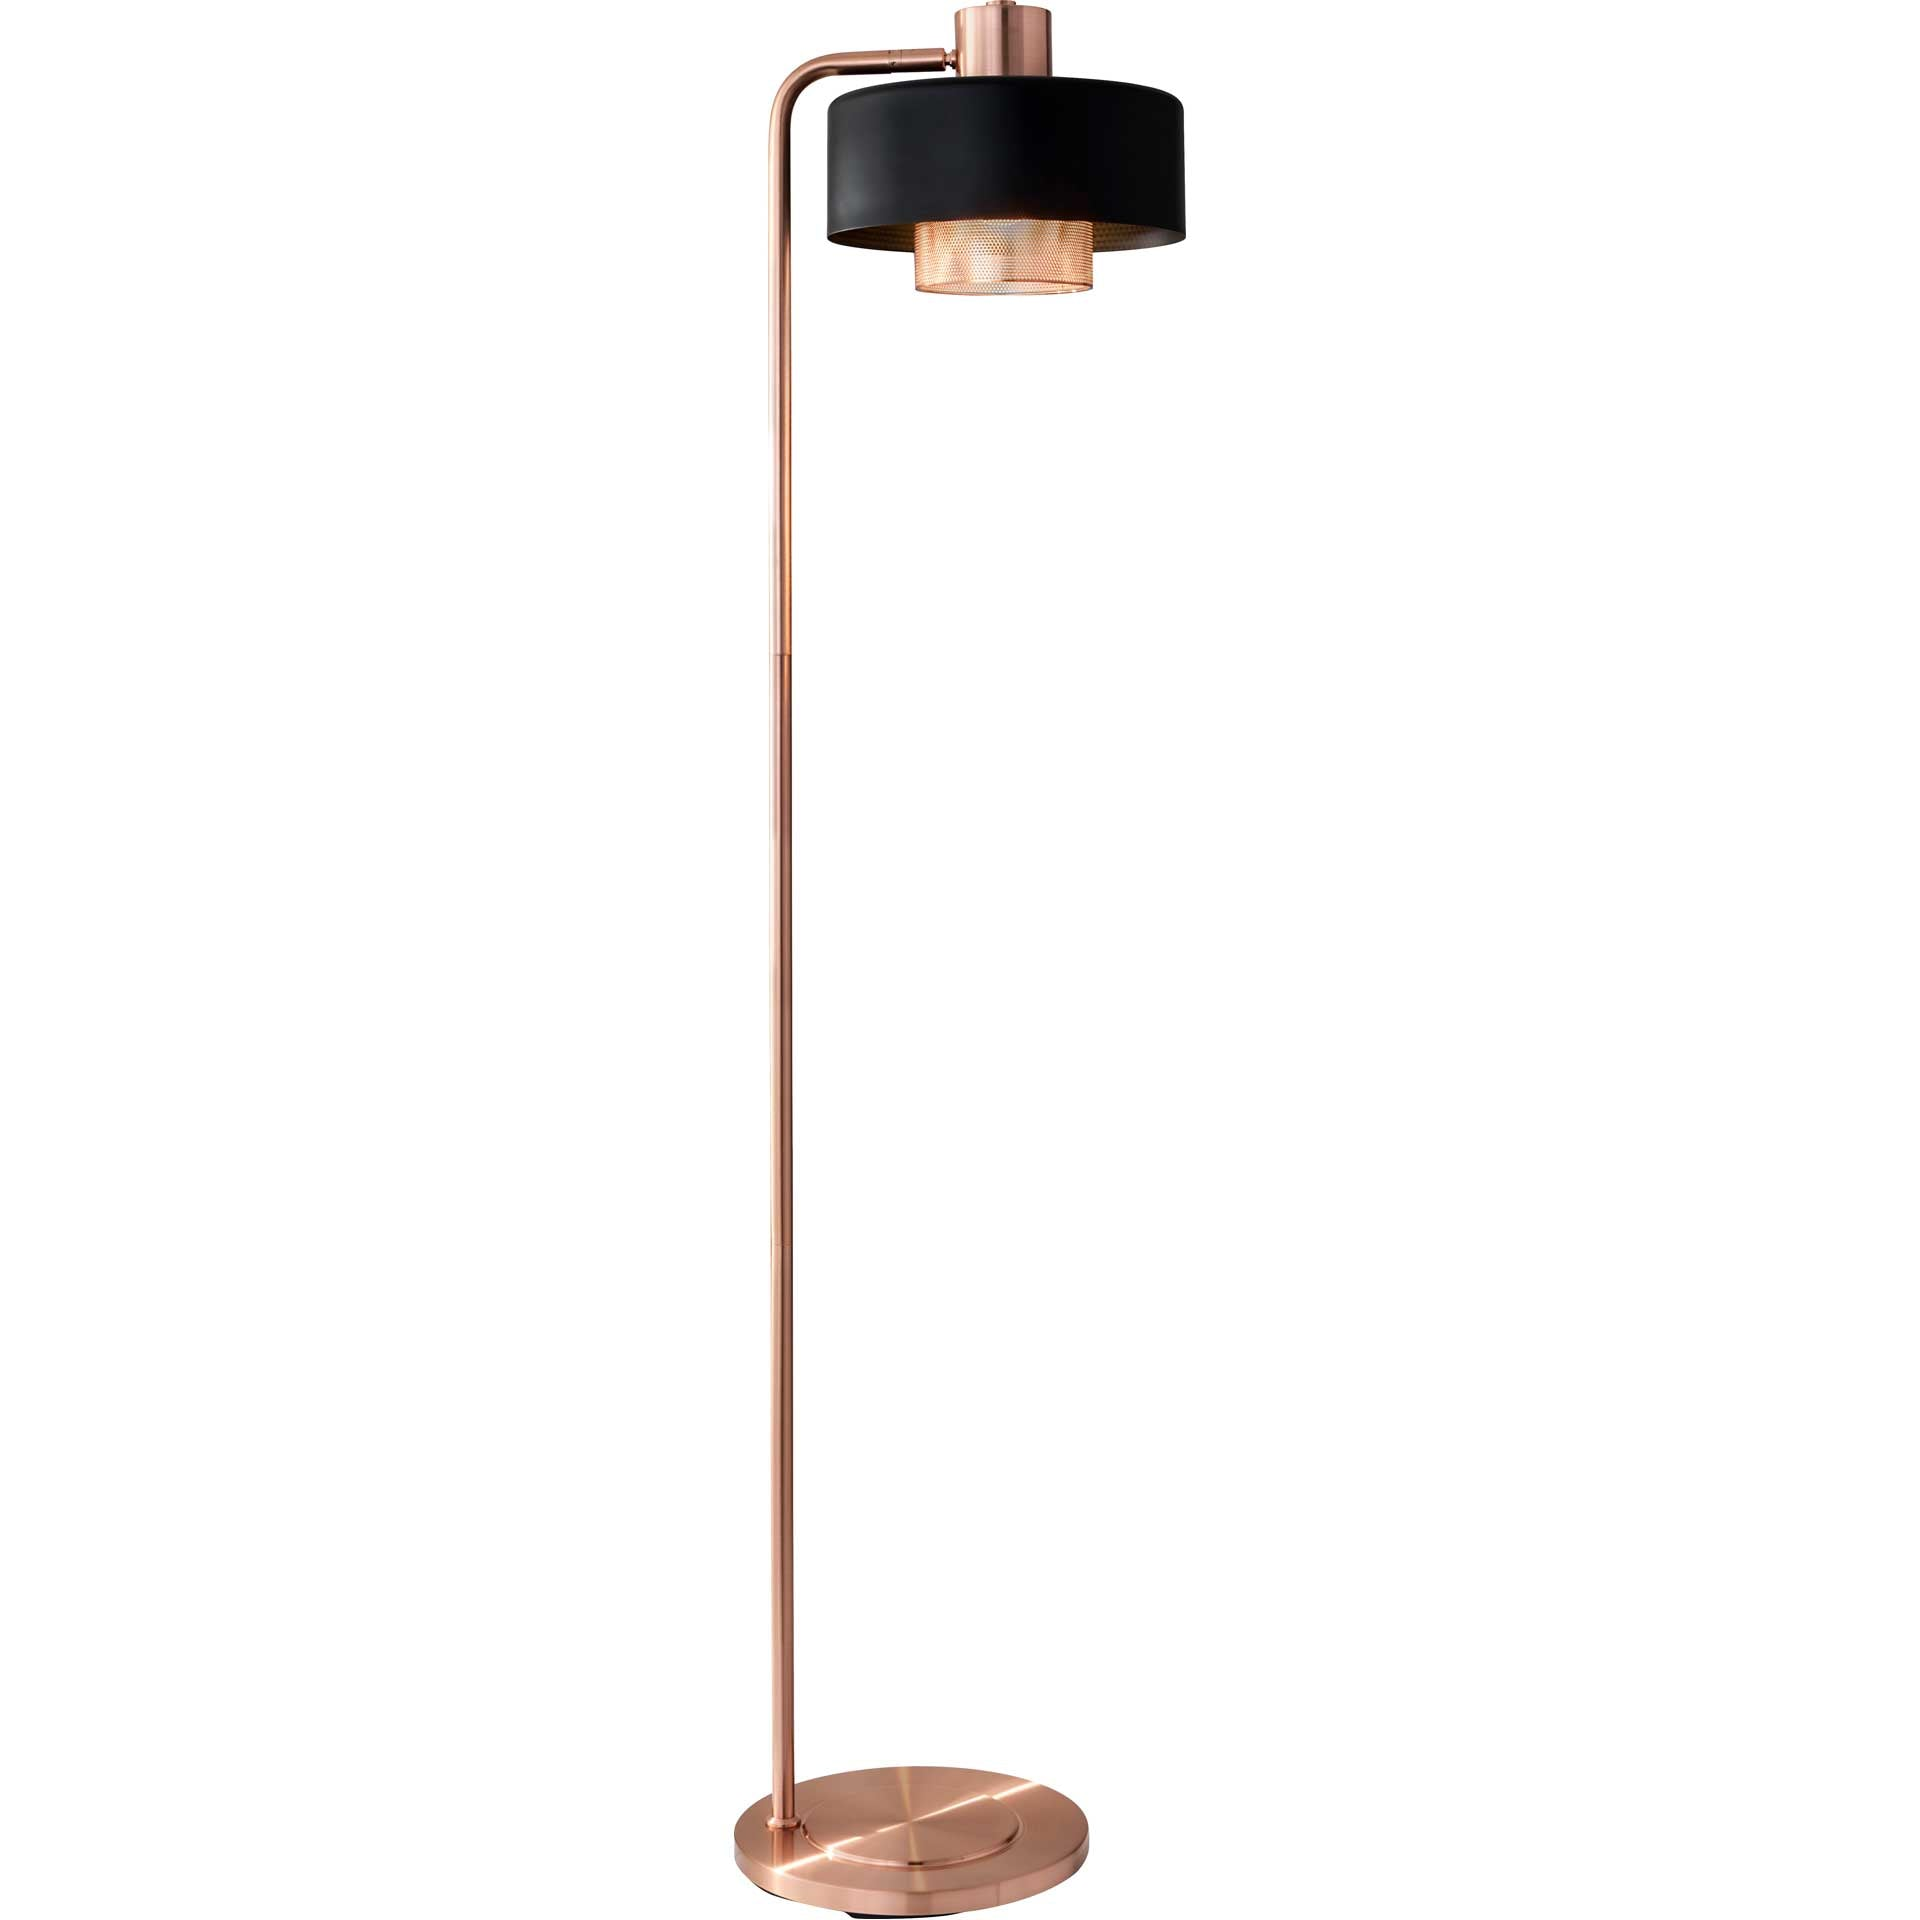 Brondby Floor Lamp Copper/Black